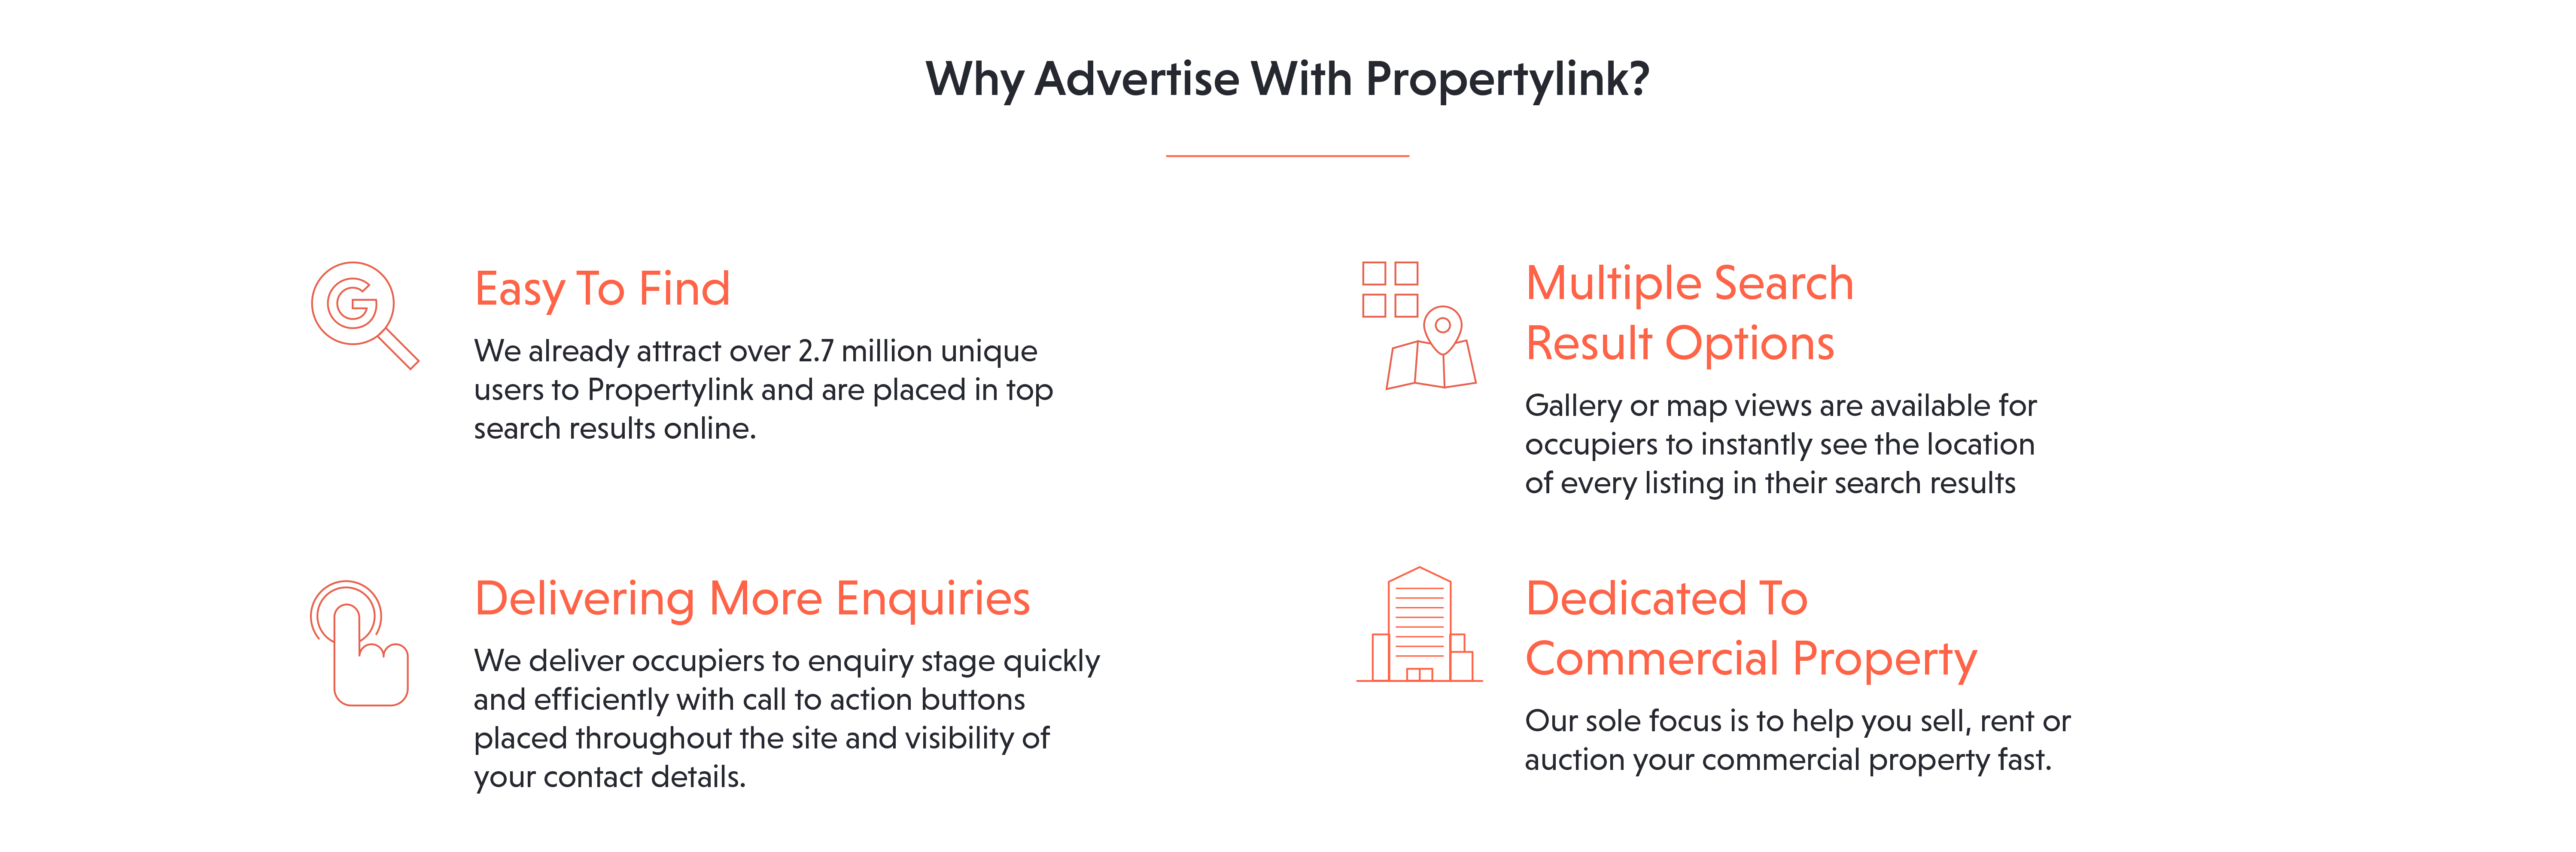 Main reasons to advertise your commercial property with Propertylink